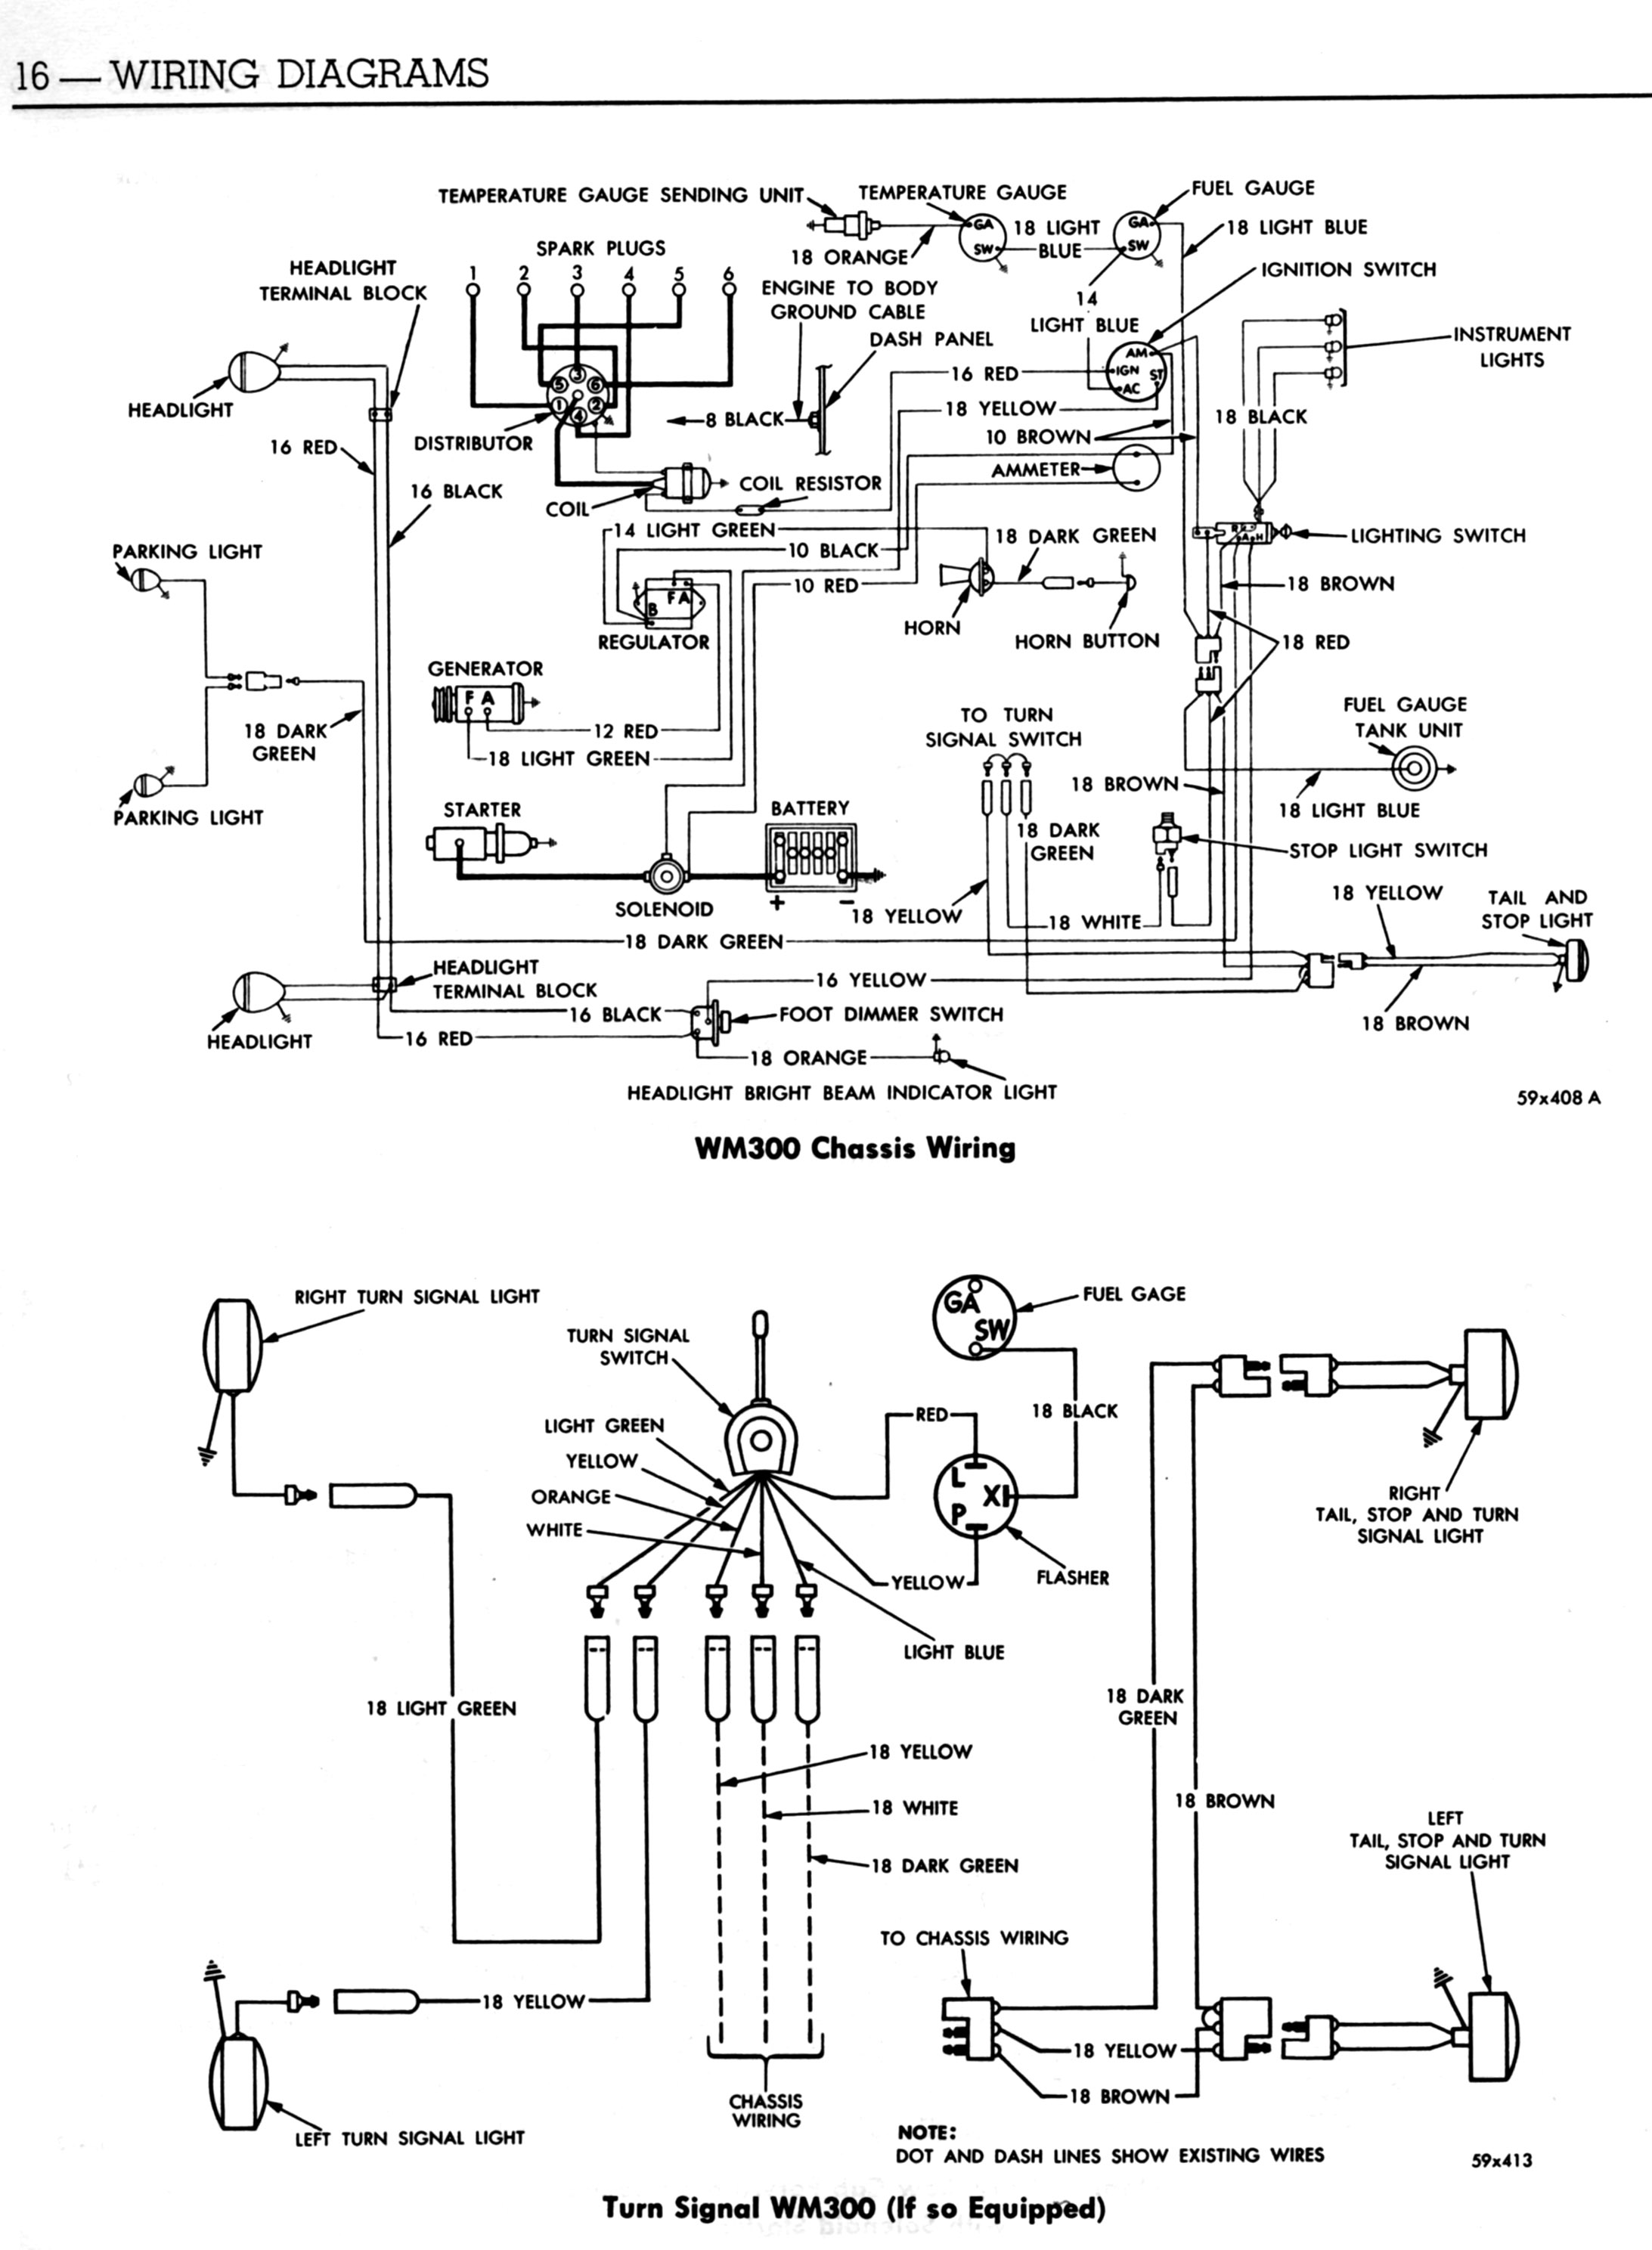 1960 WM300 Wiring Diagram